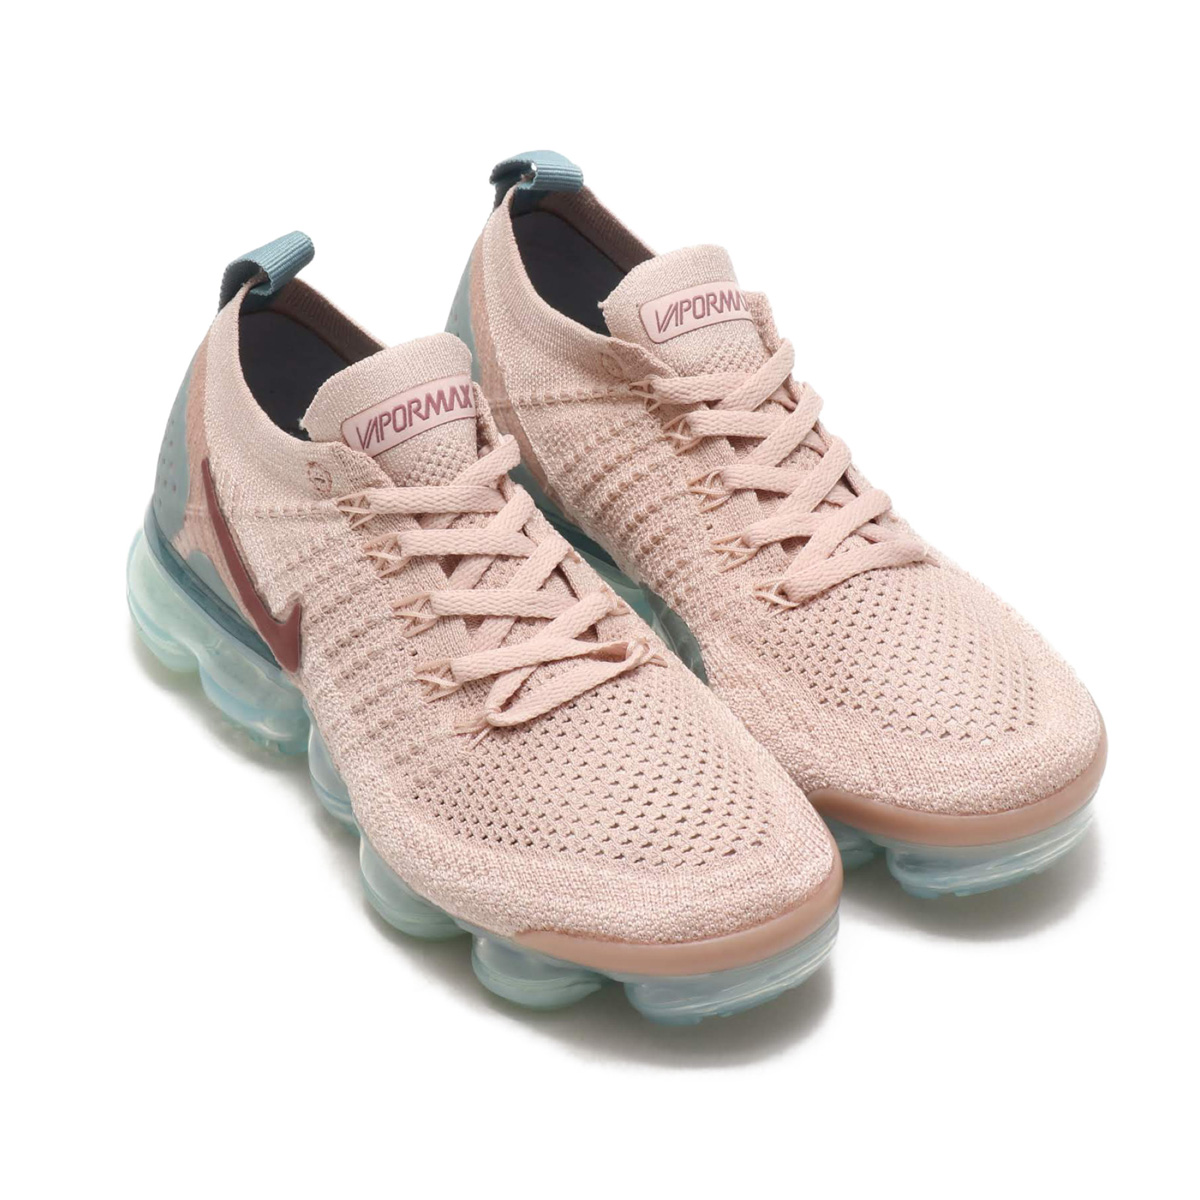 dacc83fa0e NIKE W AIR VAPORMAX FLYKNIT 2 (Nike women air vapor max fried food knit 2  ...